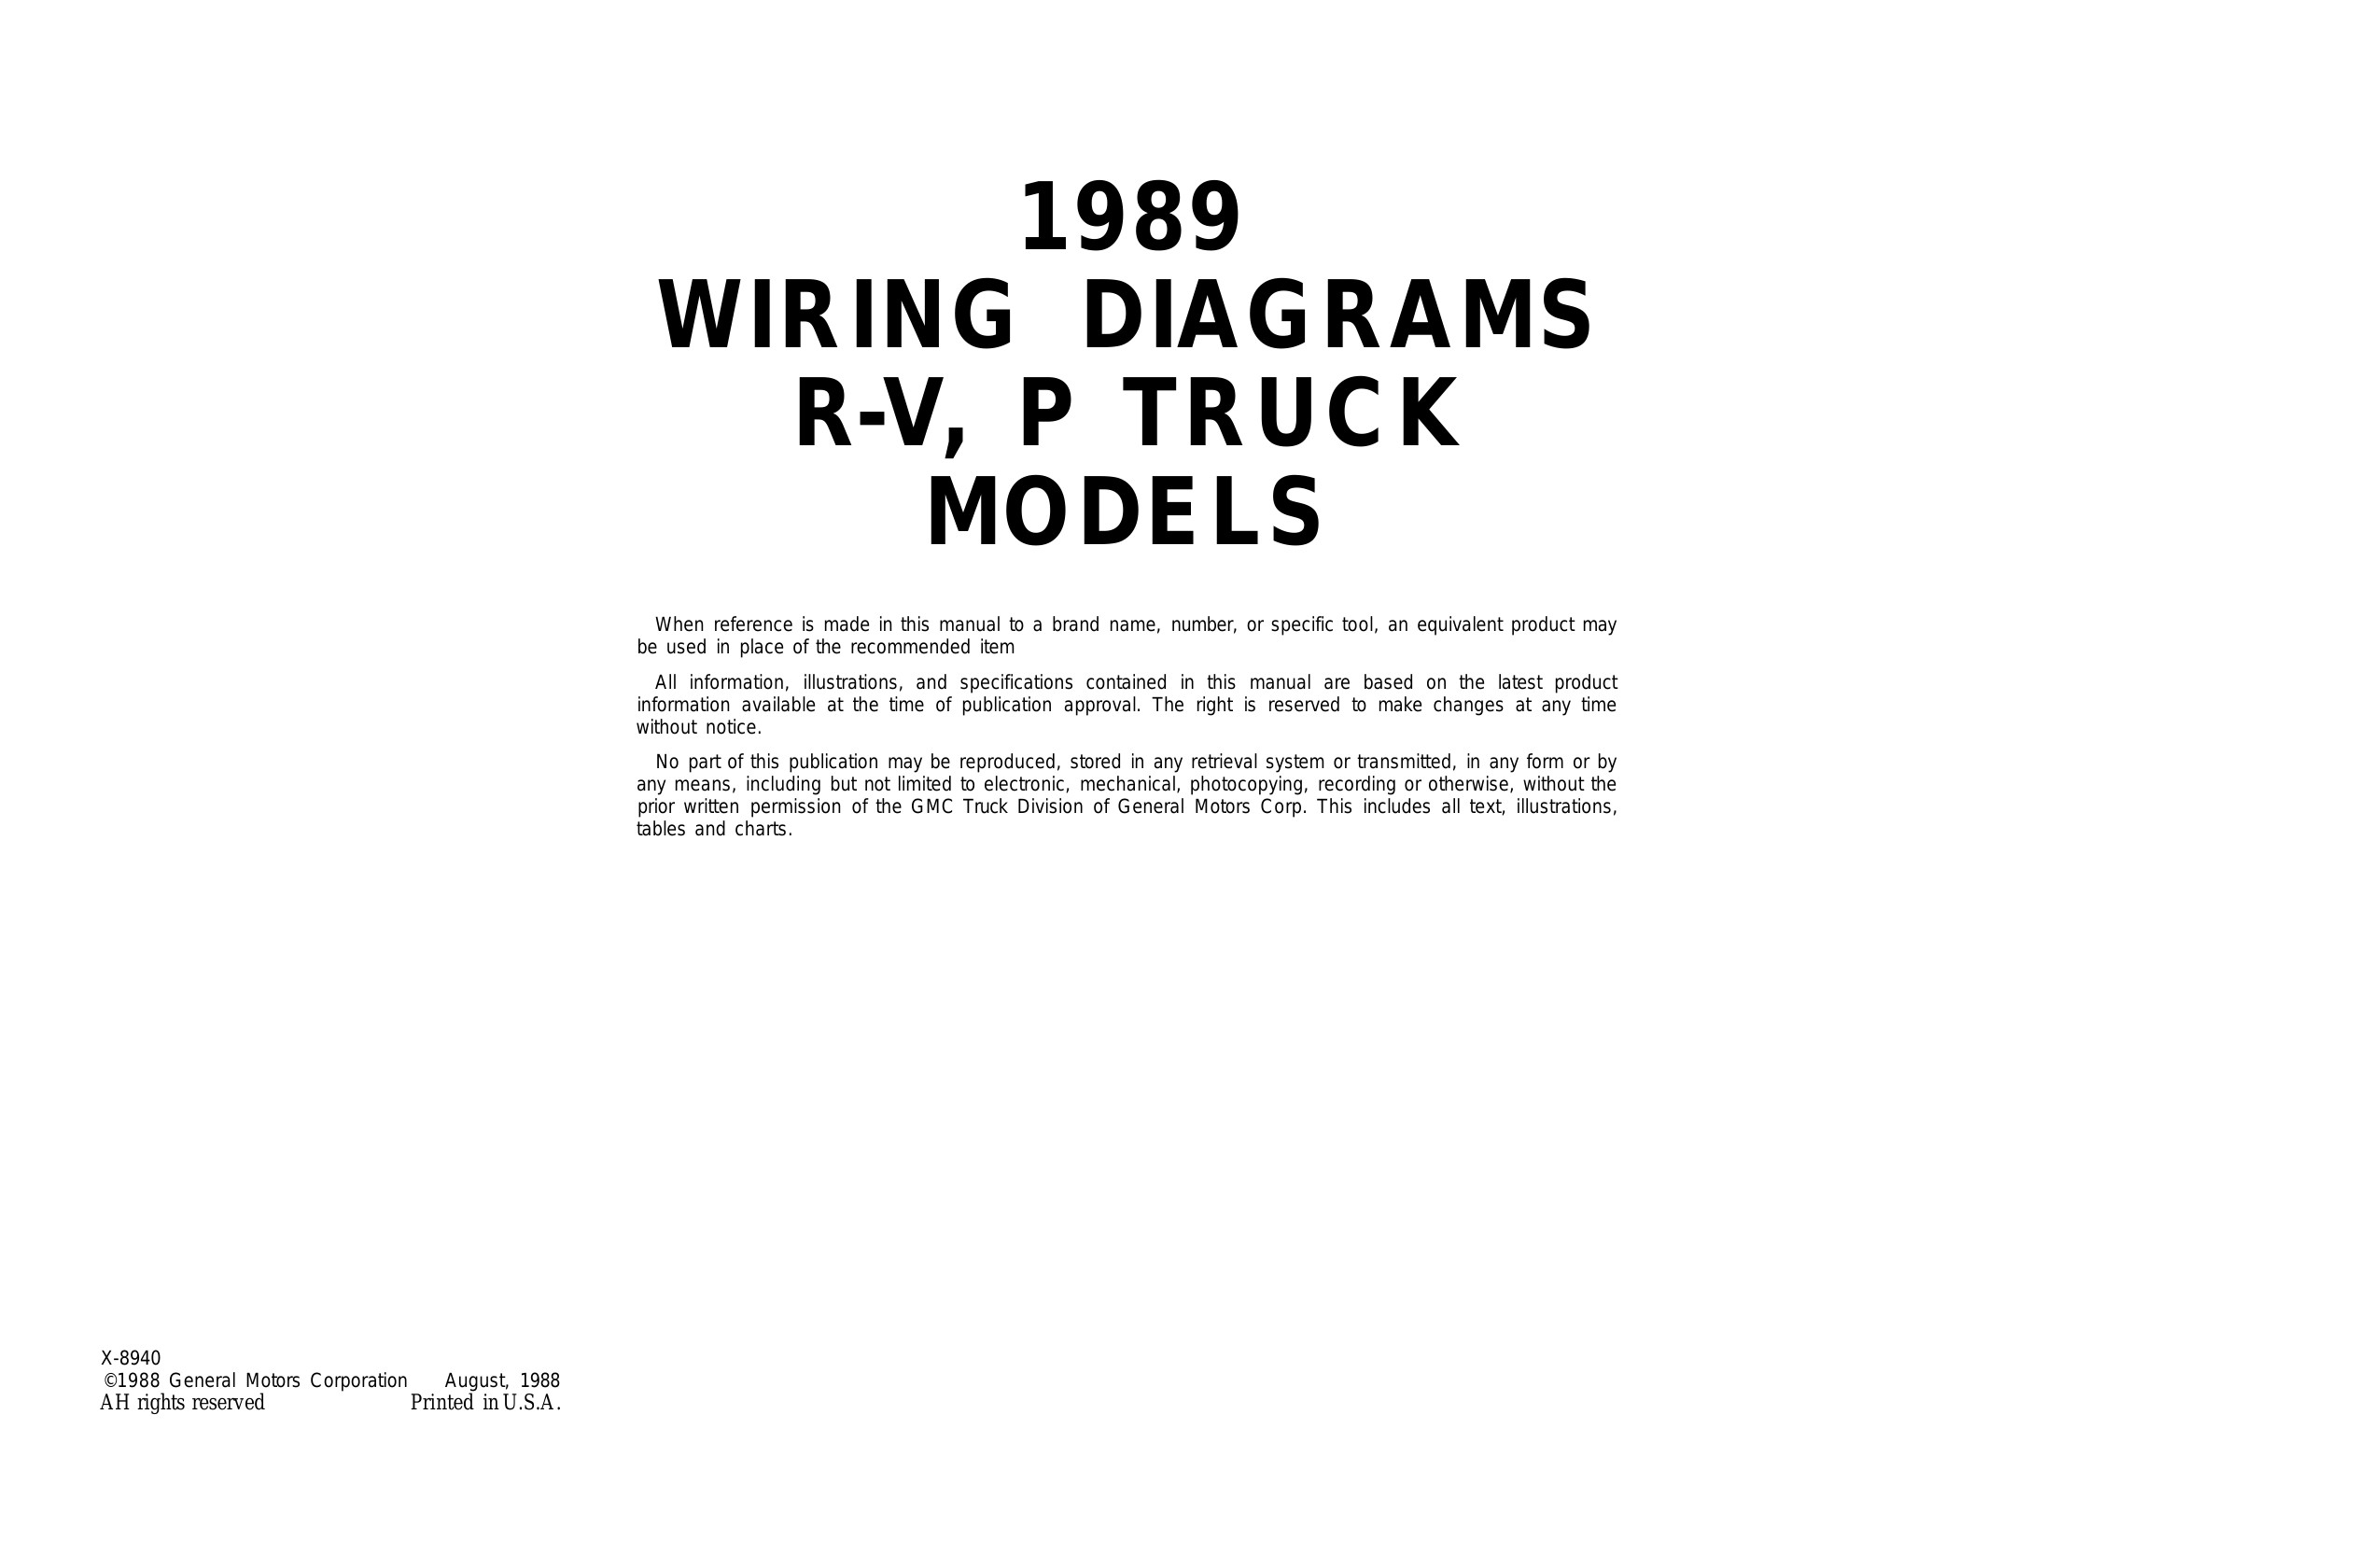 C13 and C14 Wiring Diagrams 1989 Wiring Diagrams Rv P Truck Models 73